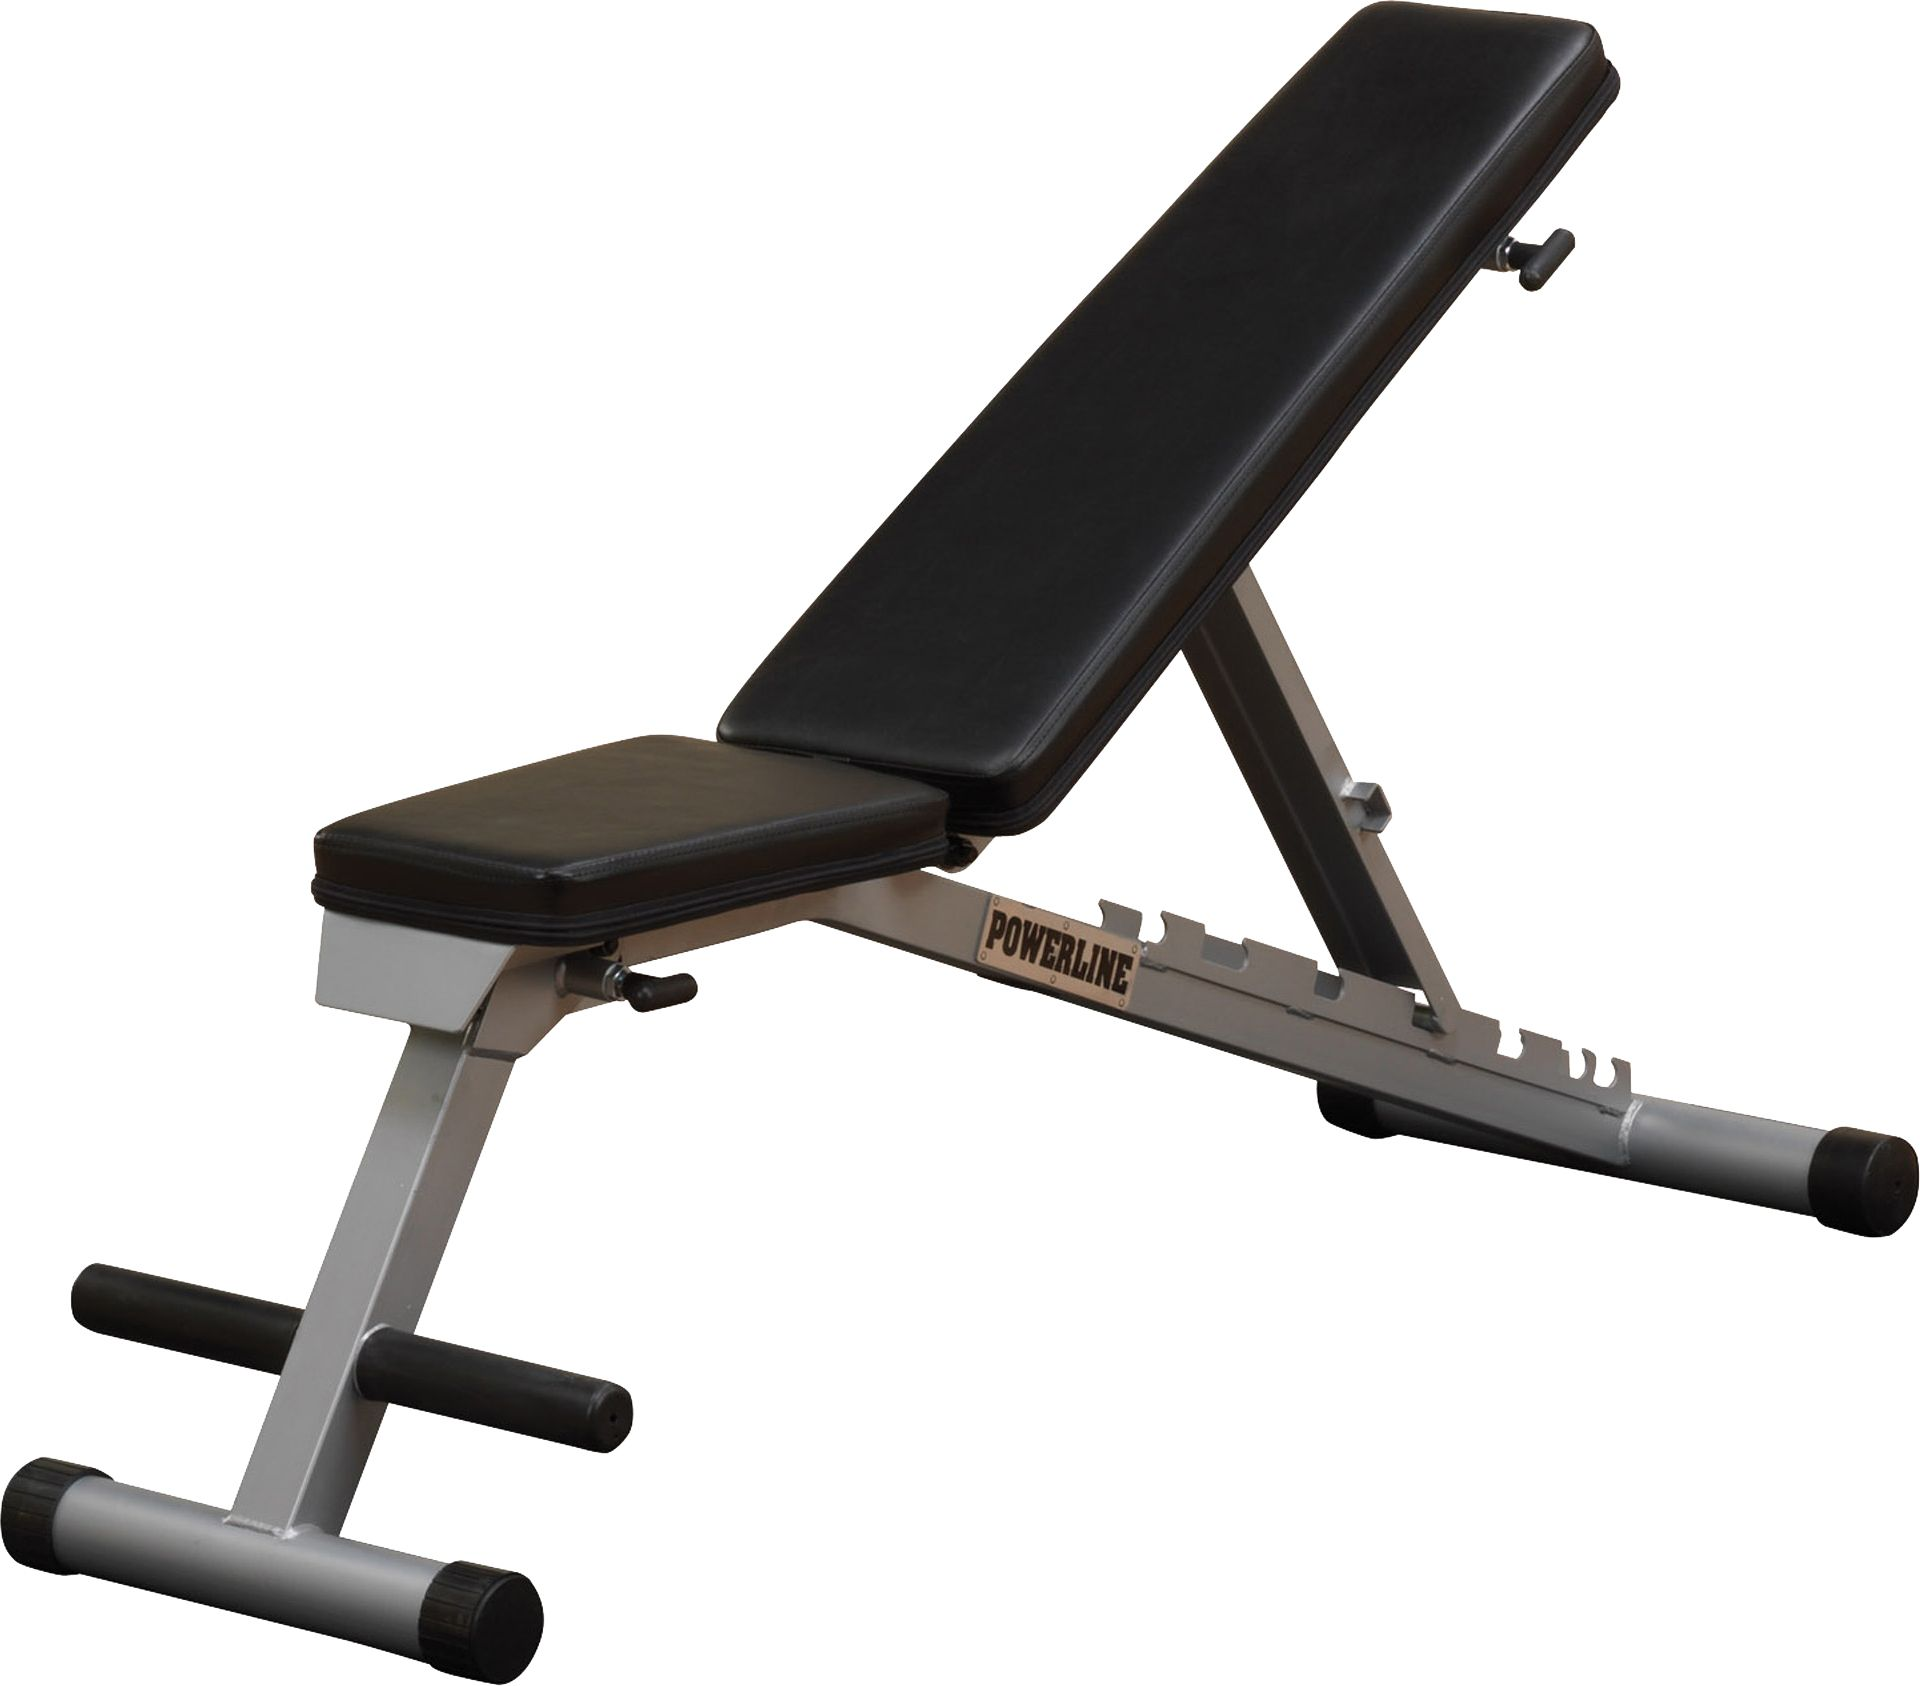 decline foldable made flat sport benches by and equipment bench marbo shop exercise products incline folding adjustable from fitness azfitnessequipmentcom gym